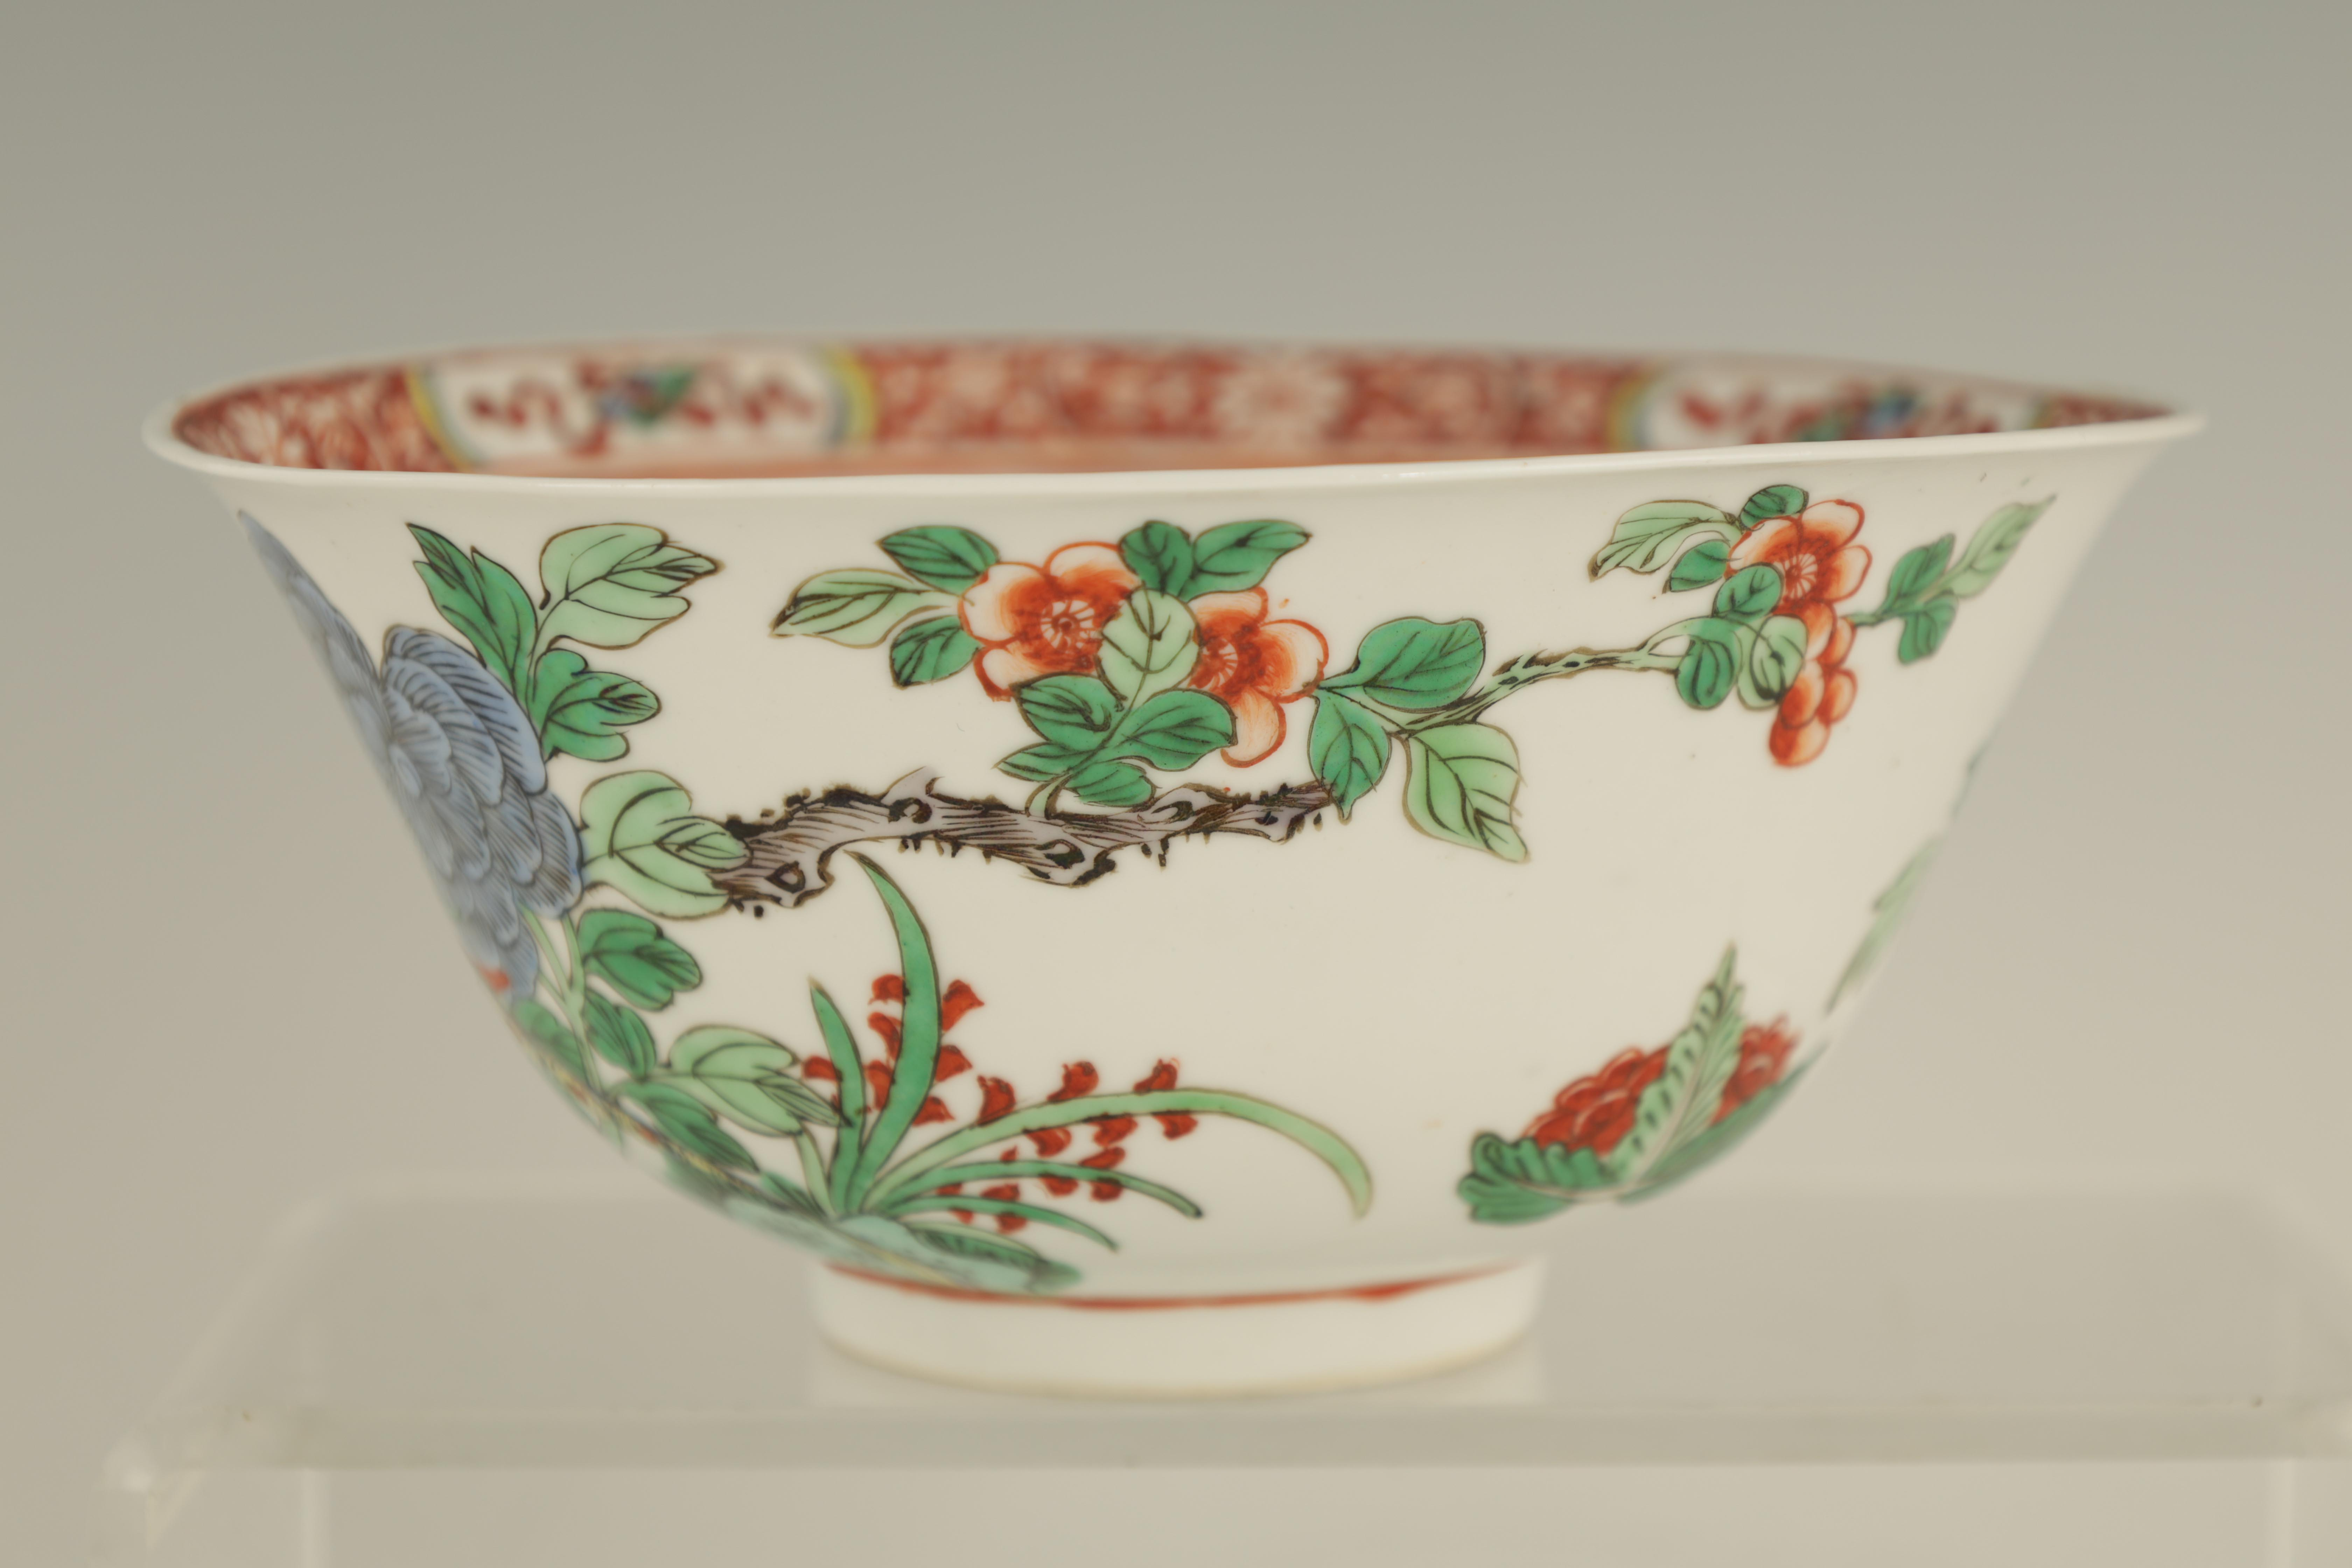 AN 18TH CENTURY CHINESE FAMILLE VERTE PORCELAIN BOWL BEARING KANGXI MARKS decorated with birds - Image 3 of 7